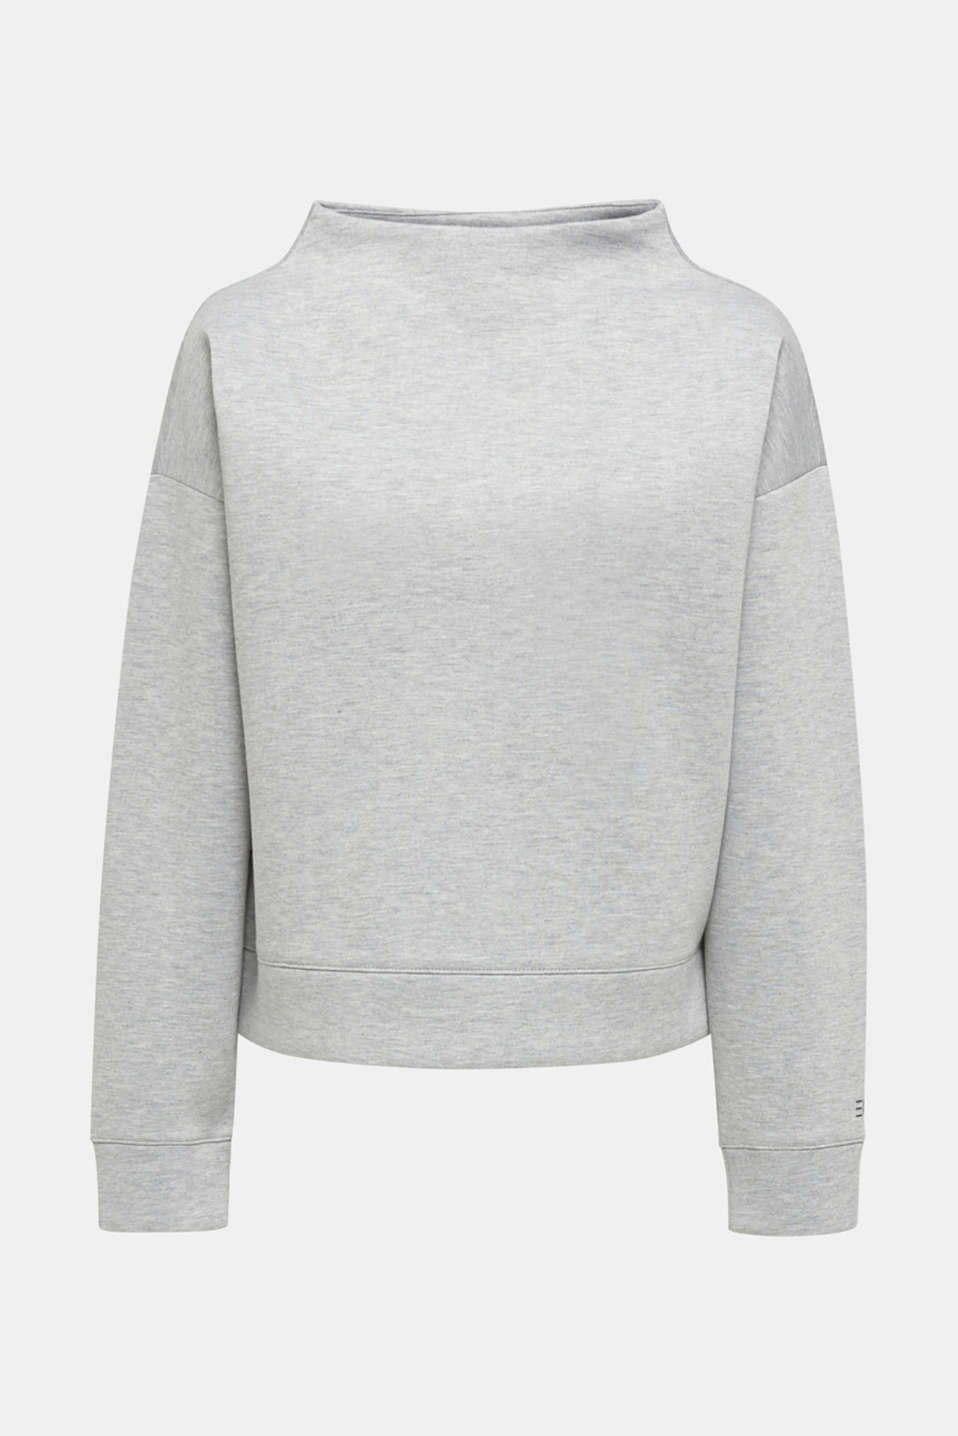 Compact sweatshirt with a stand-up collar, LIGHT GREY 5, detail image number 7